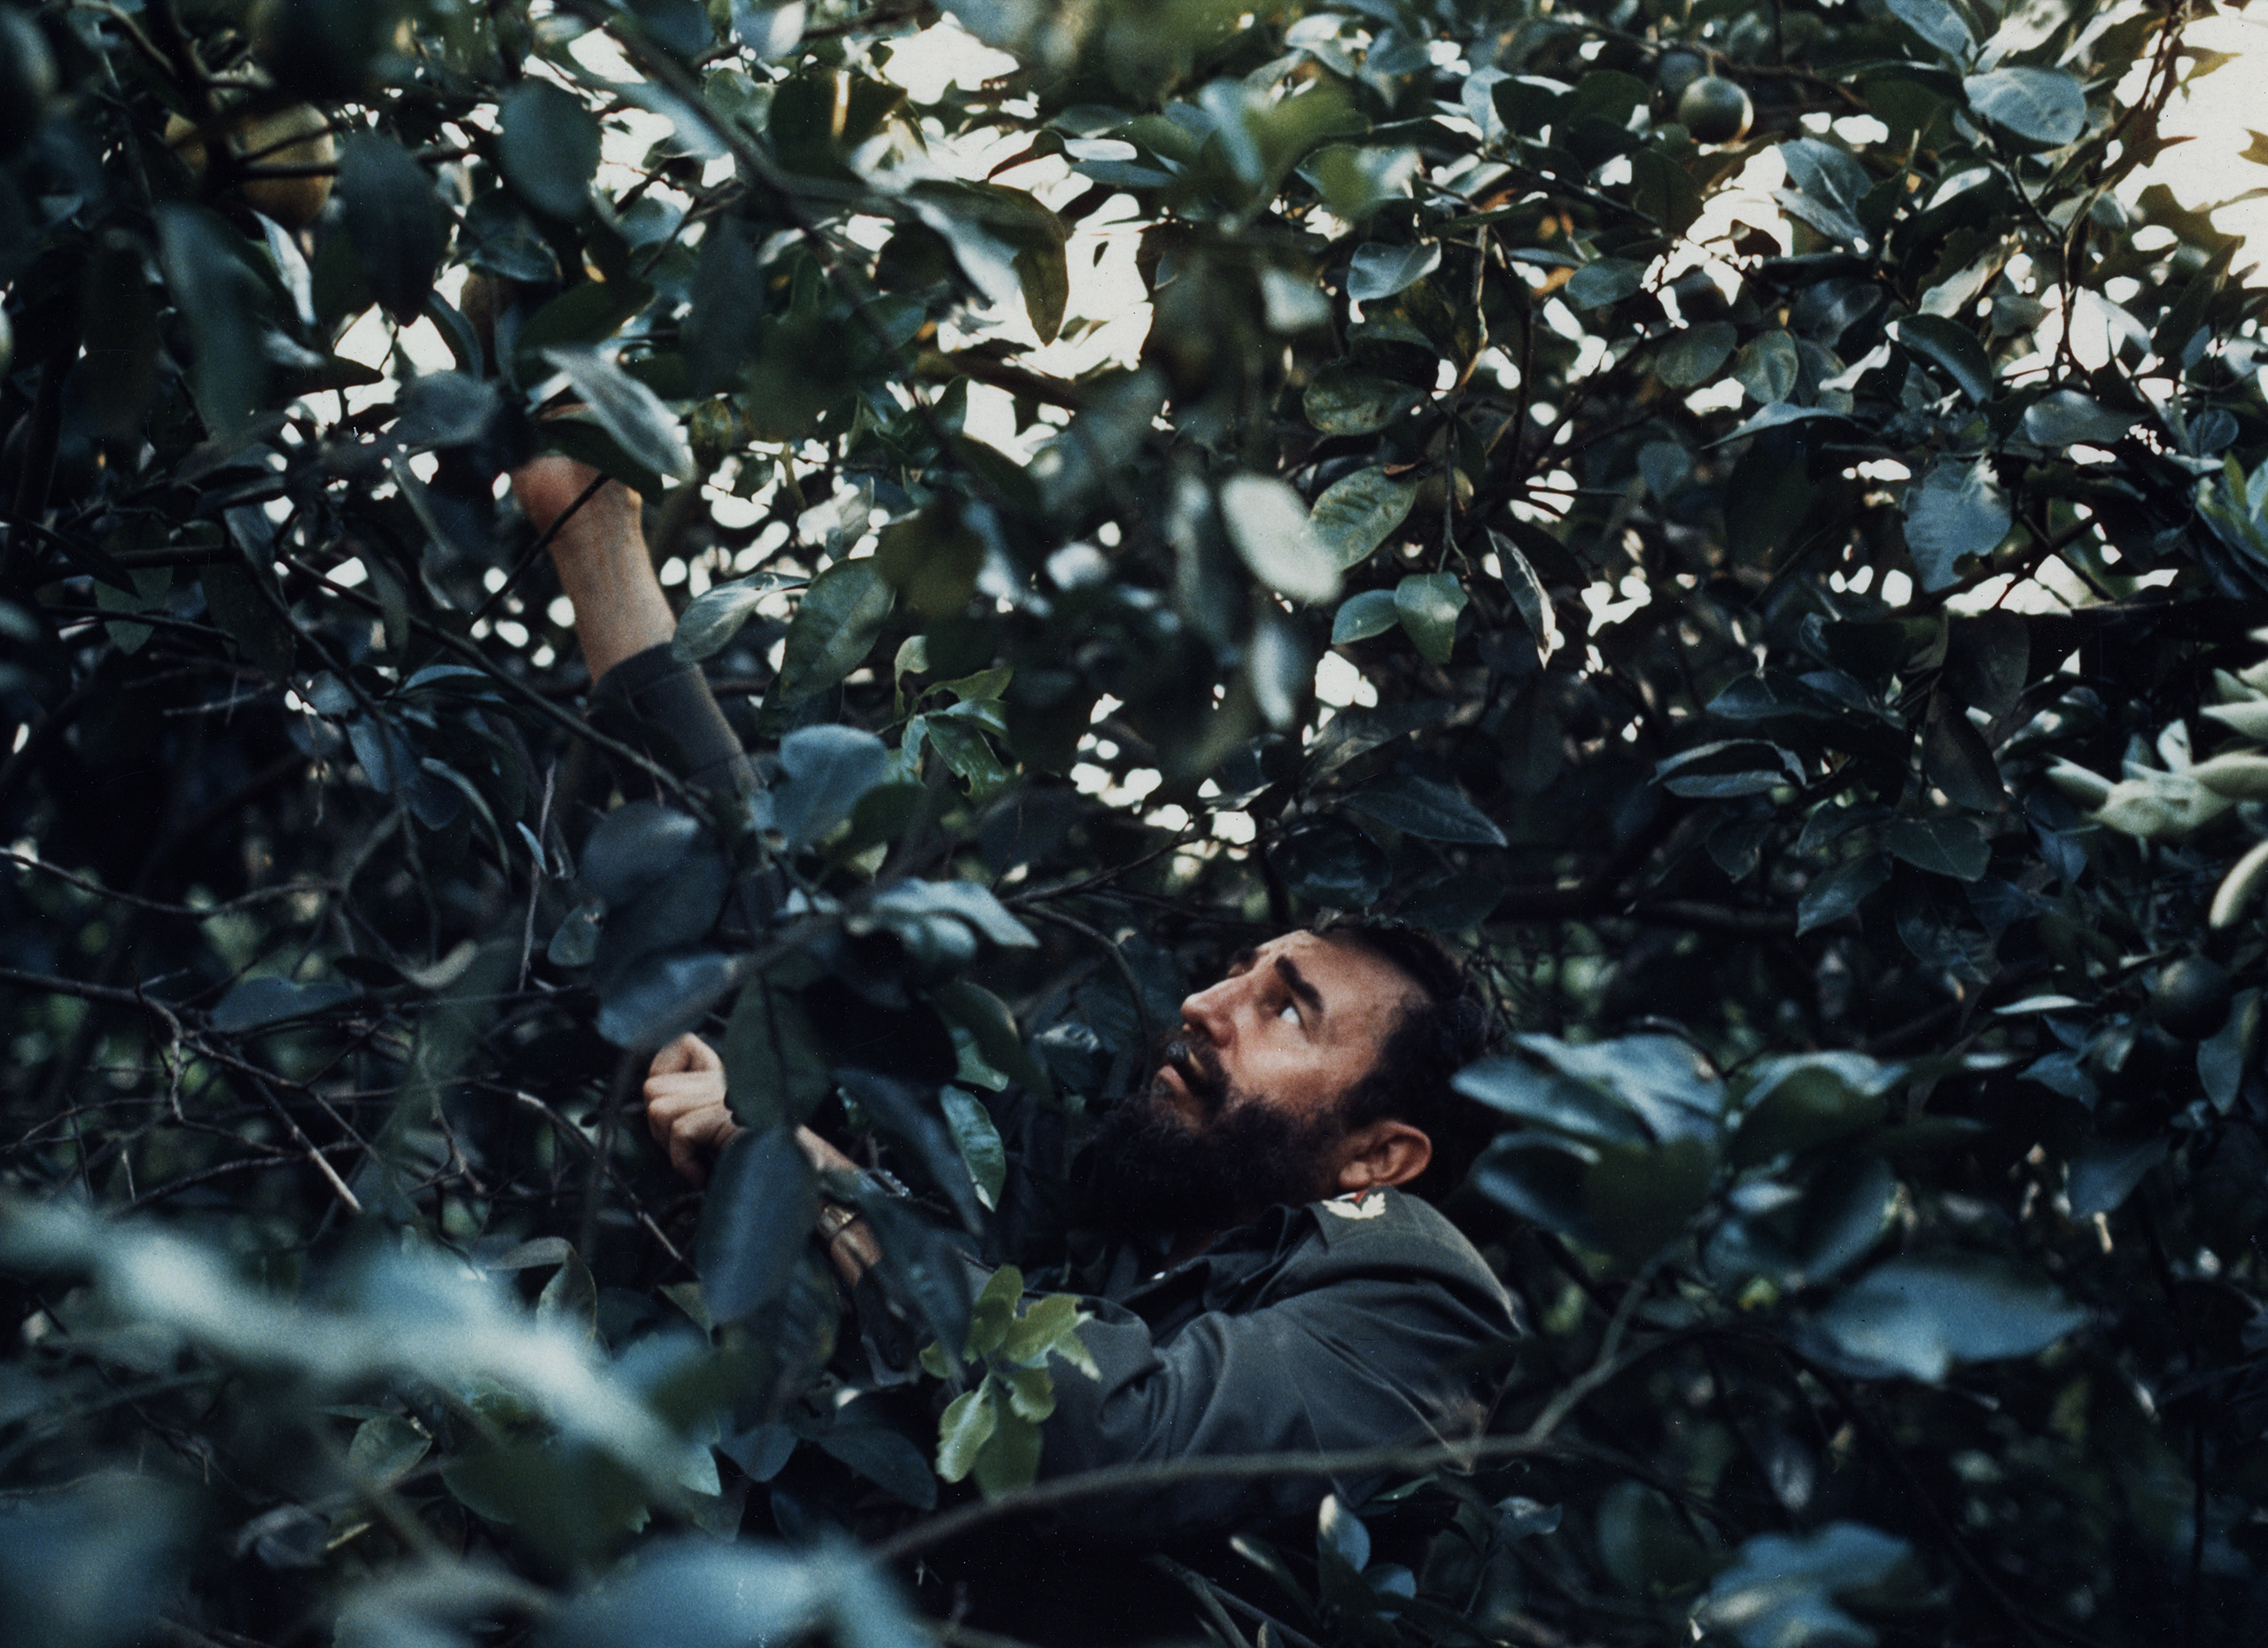 Fidel Castro surrounded by grapefruit trees.